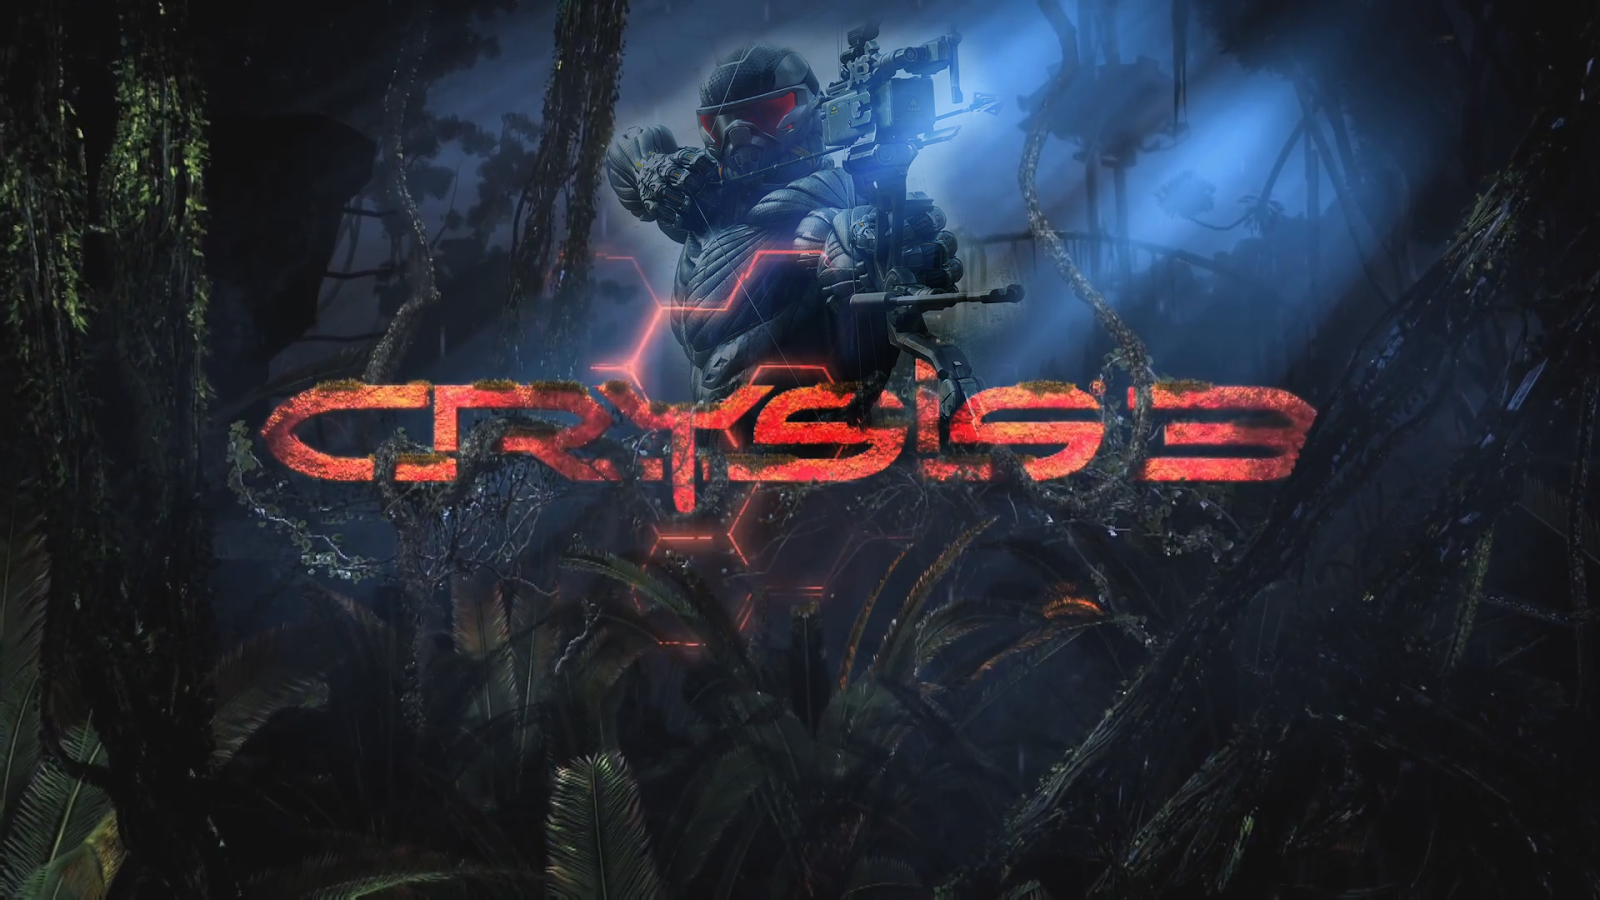 crysis 3 prophet and predator bow wallpapers - Crysis 3 Prophet and Predator Bow HD desktop wallpaper